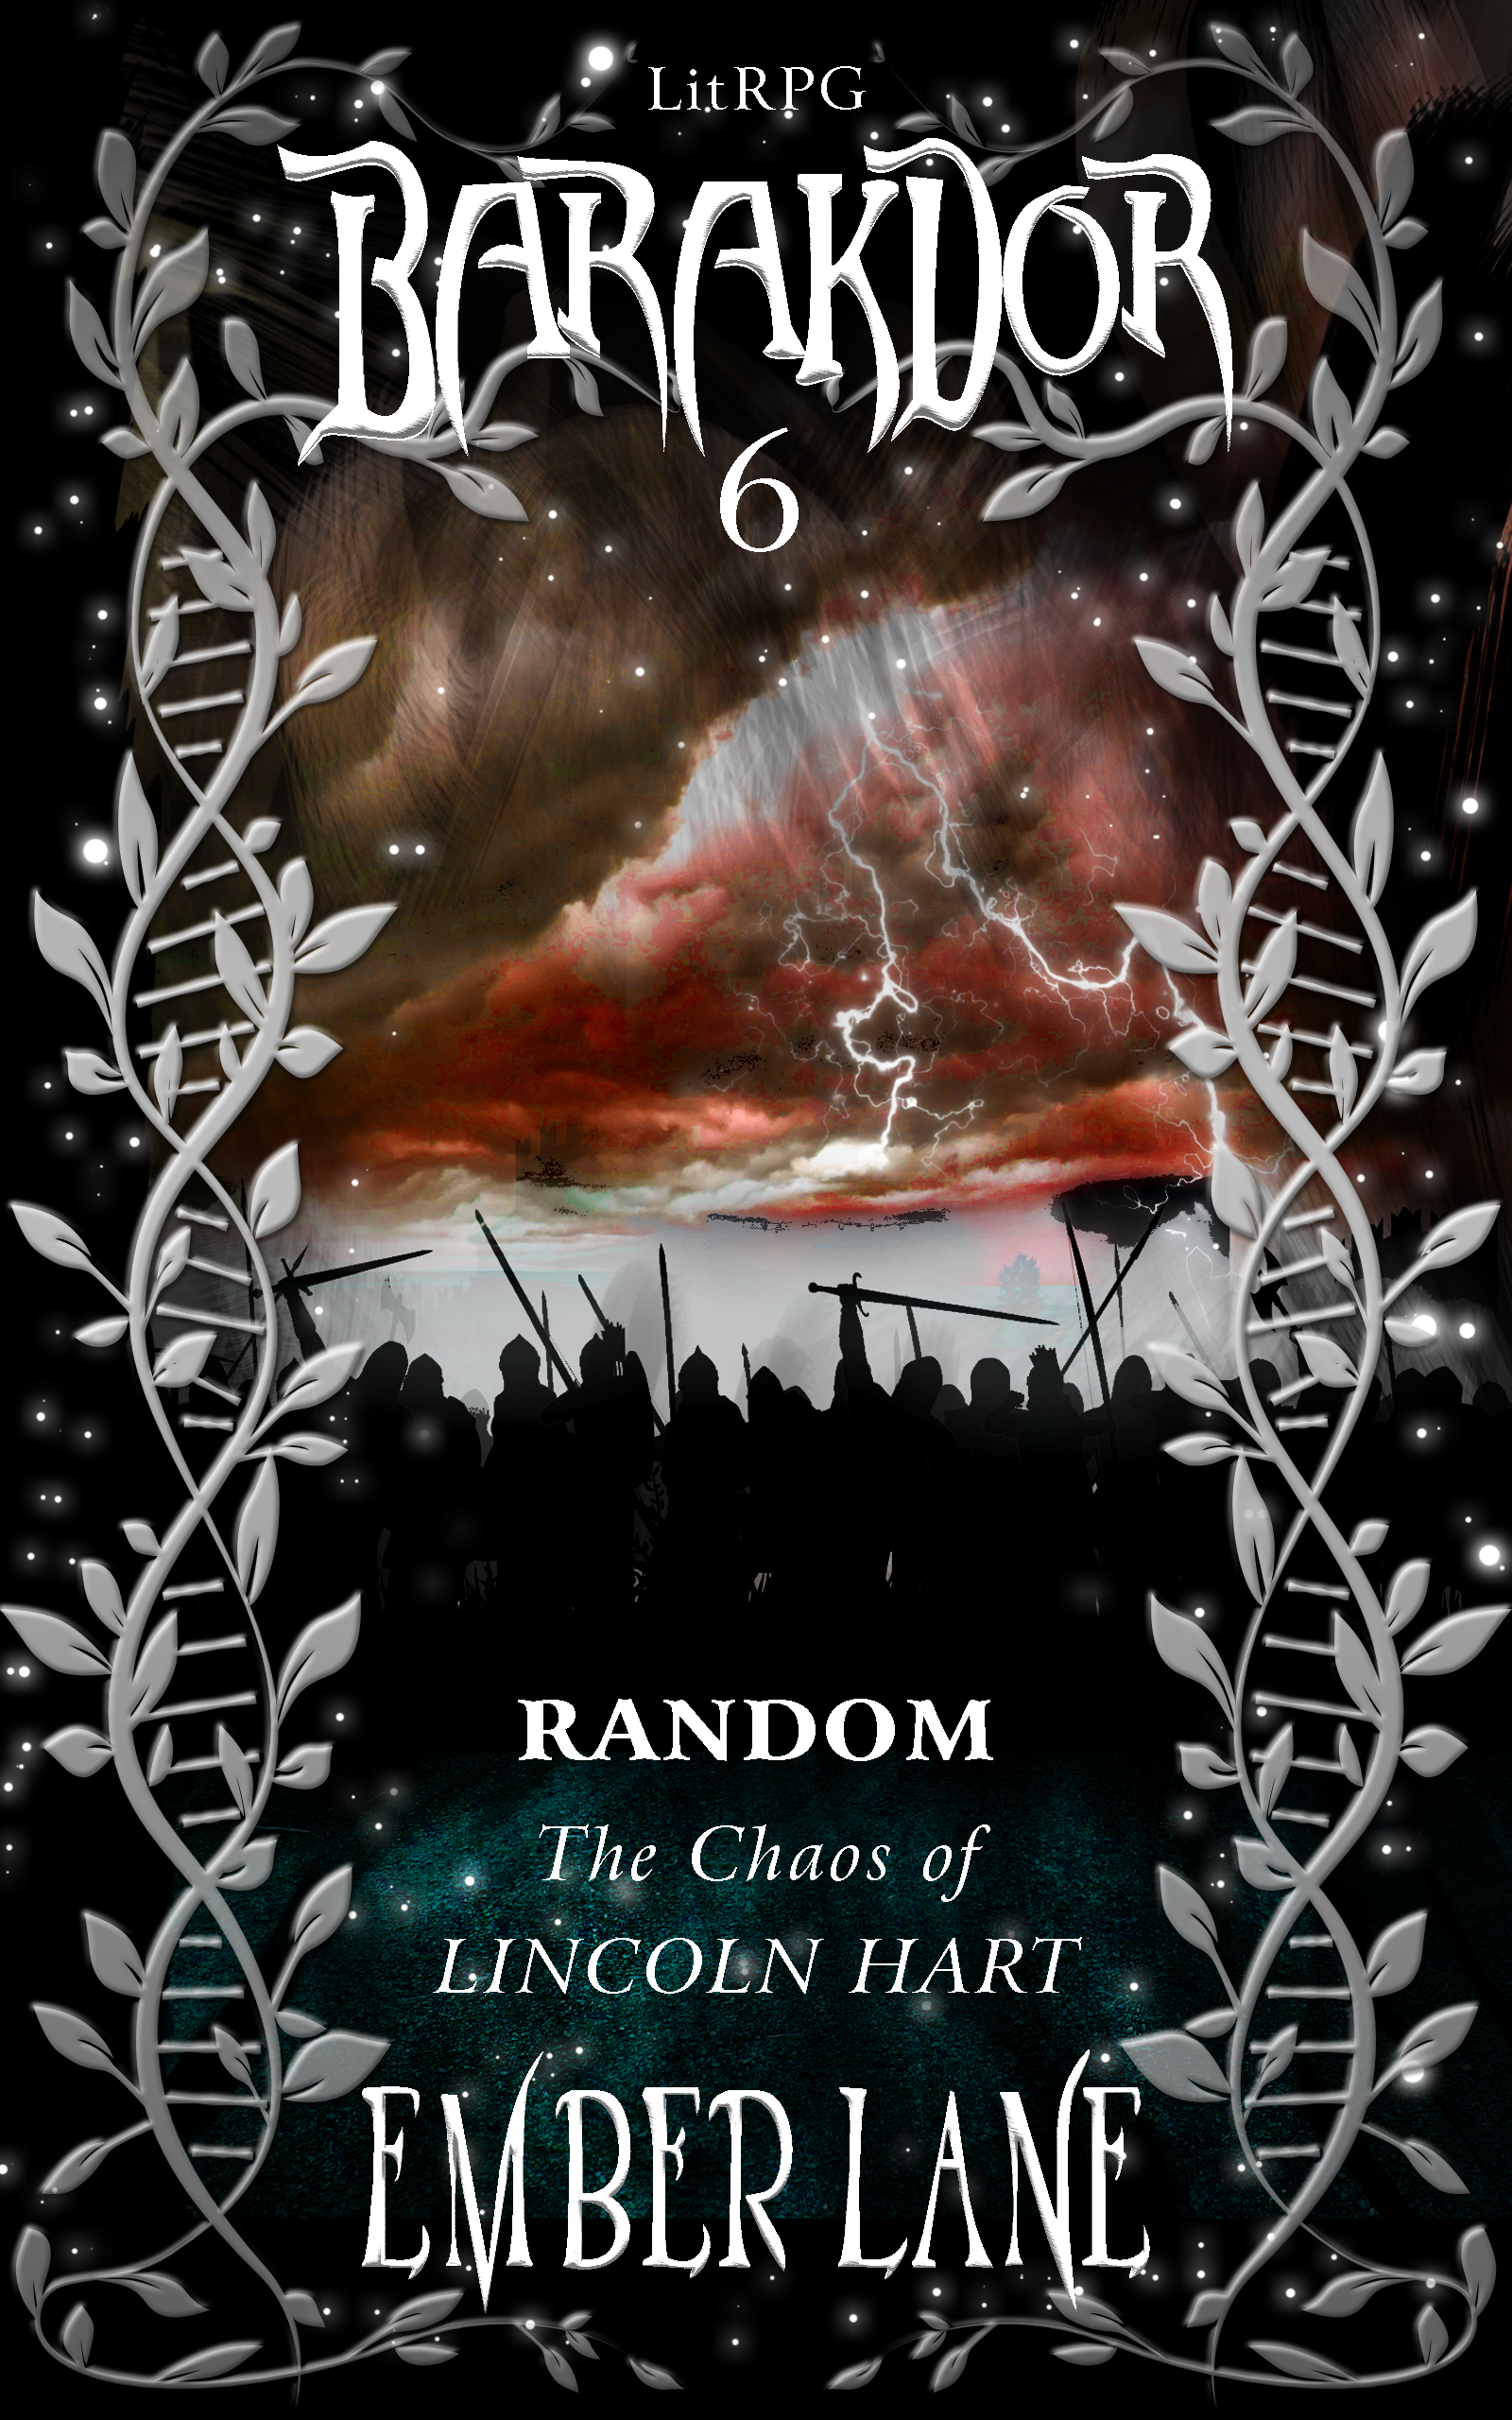 Barakdor book 6 – RANDOM The Chaos of Lincoln Hart